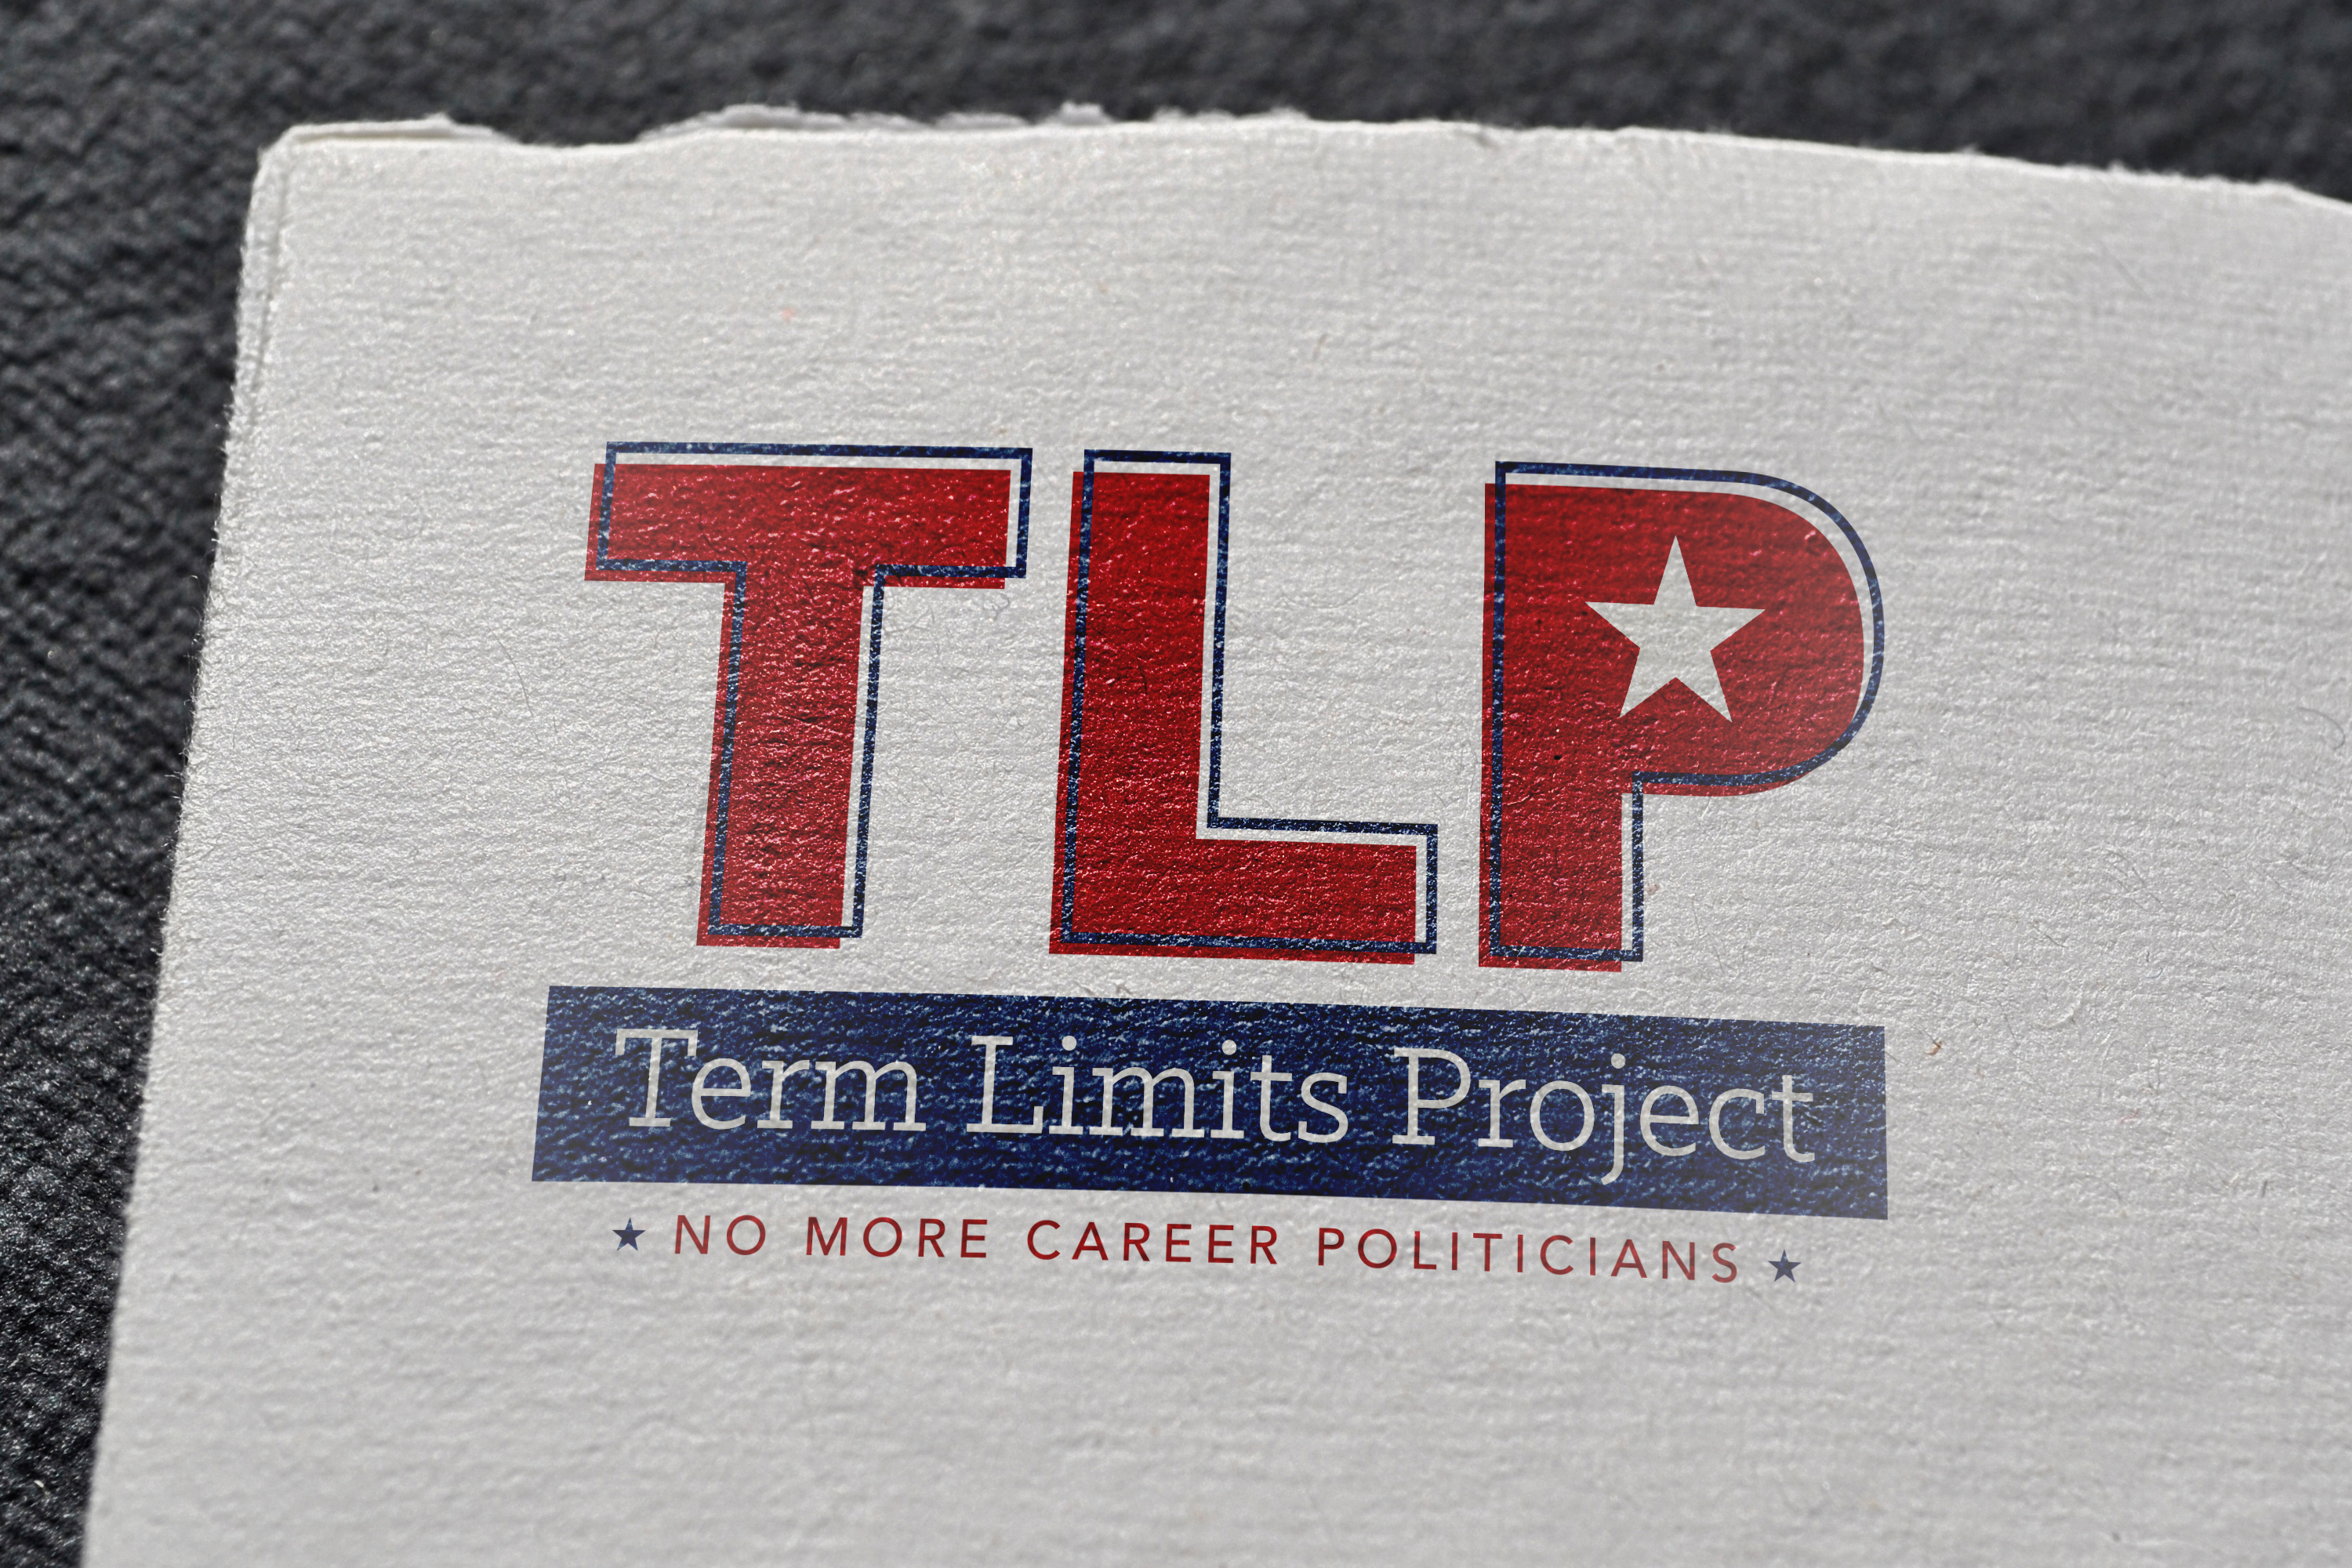 Term Limits Project